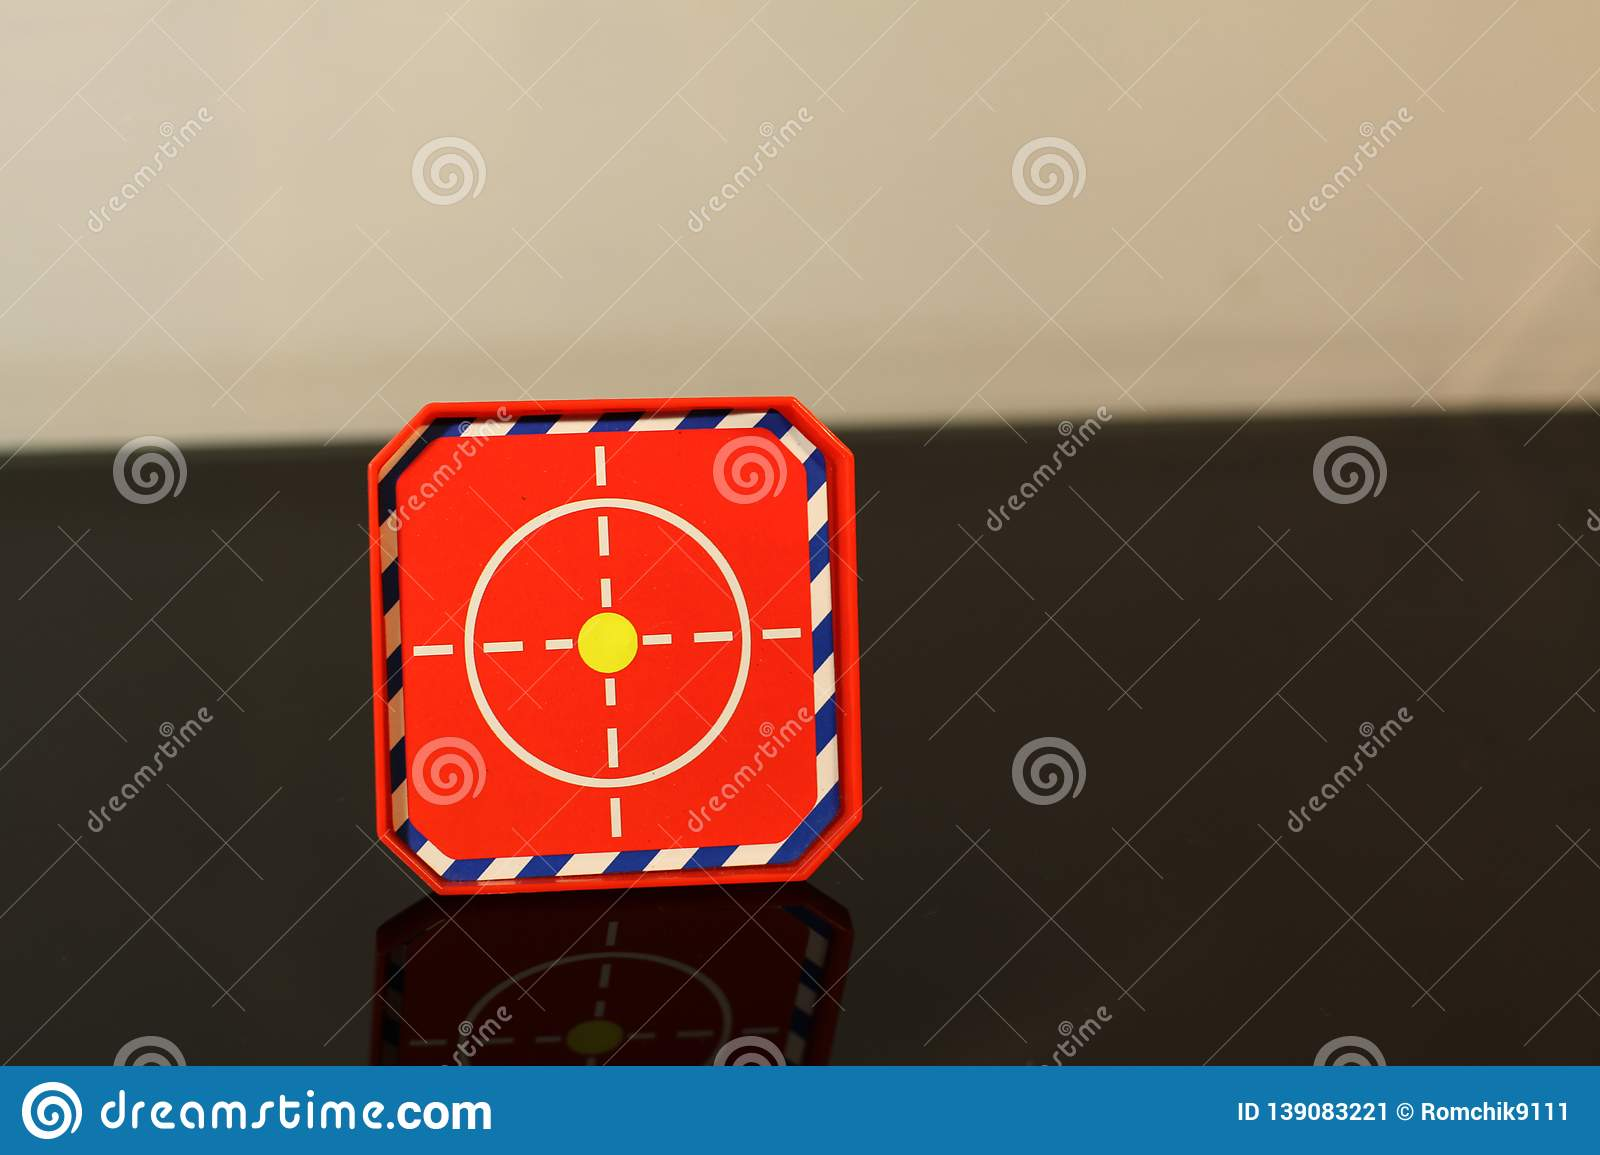 Red target black table